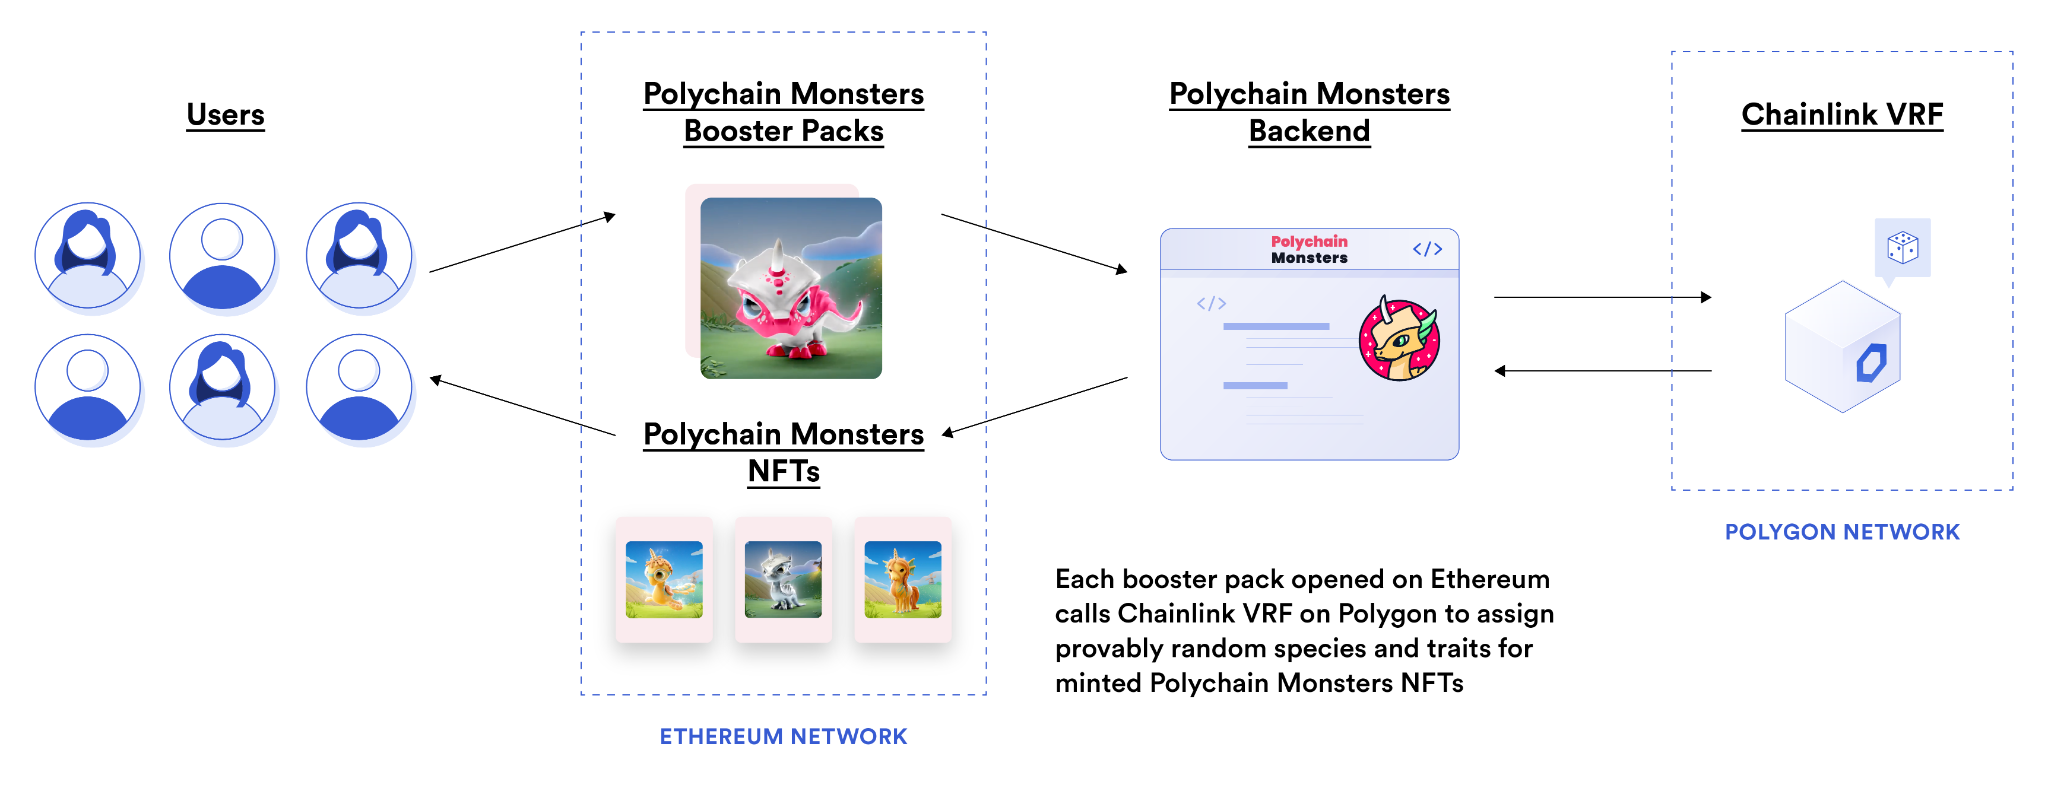 A diagram showing how Polychain Monsters uses Chainlink VRF to assign provably random species and traits to NFTs.